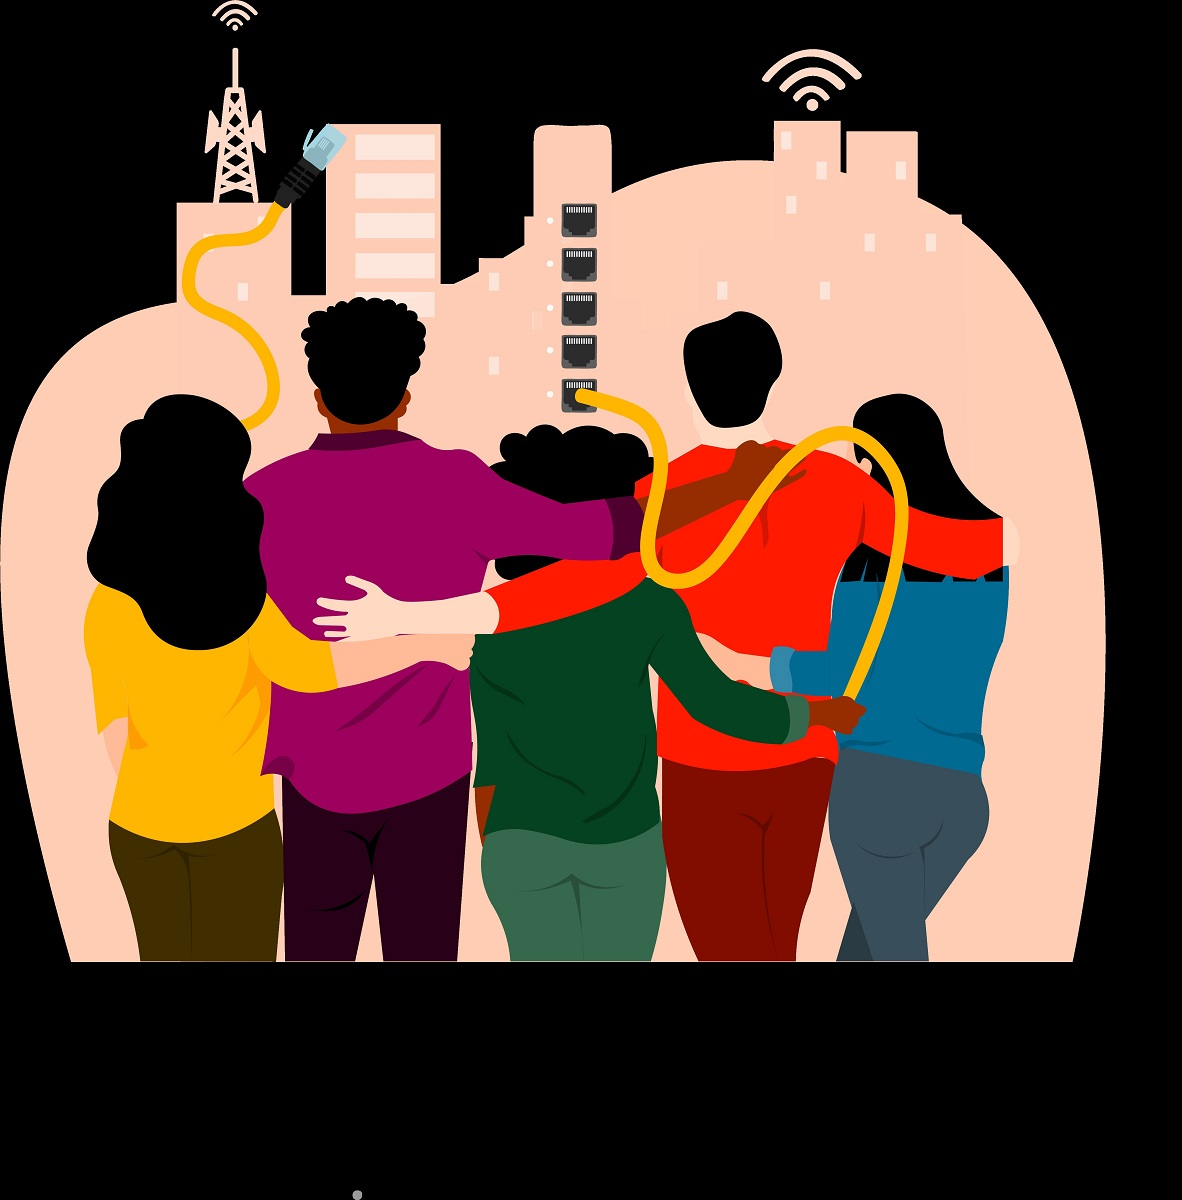 Illustration of five people, backs to the viewer, arms around each other, looking at a cityscape with with USB cords plugged into buildings and wifi/Internet symbols